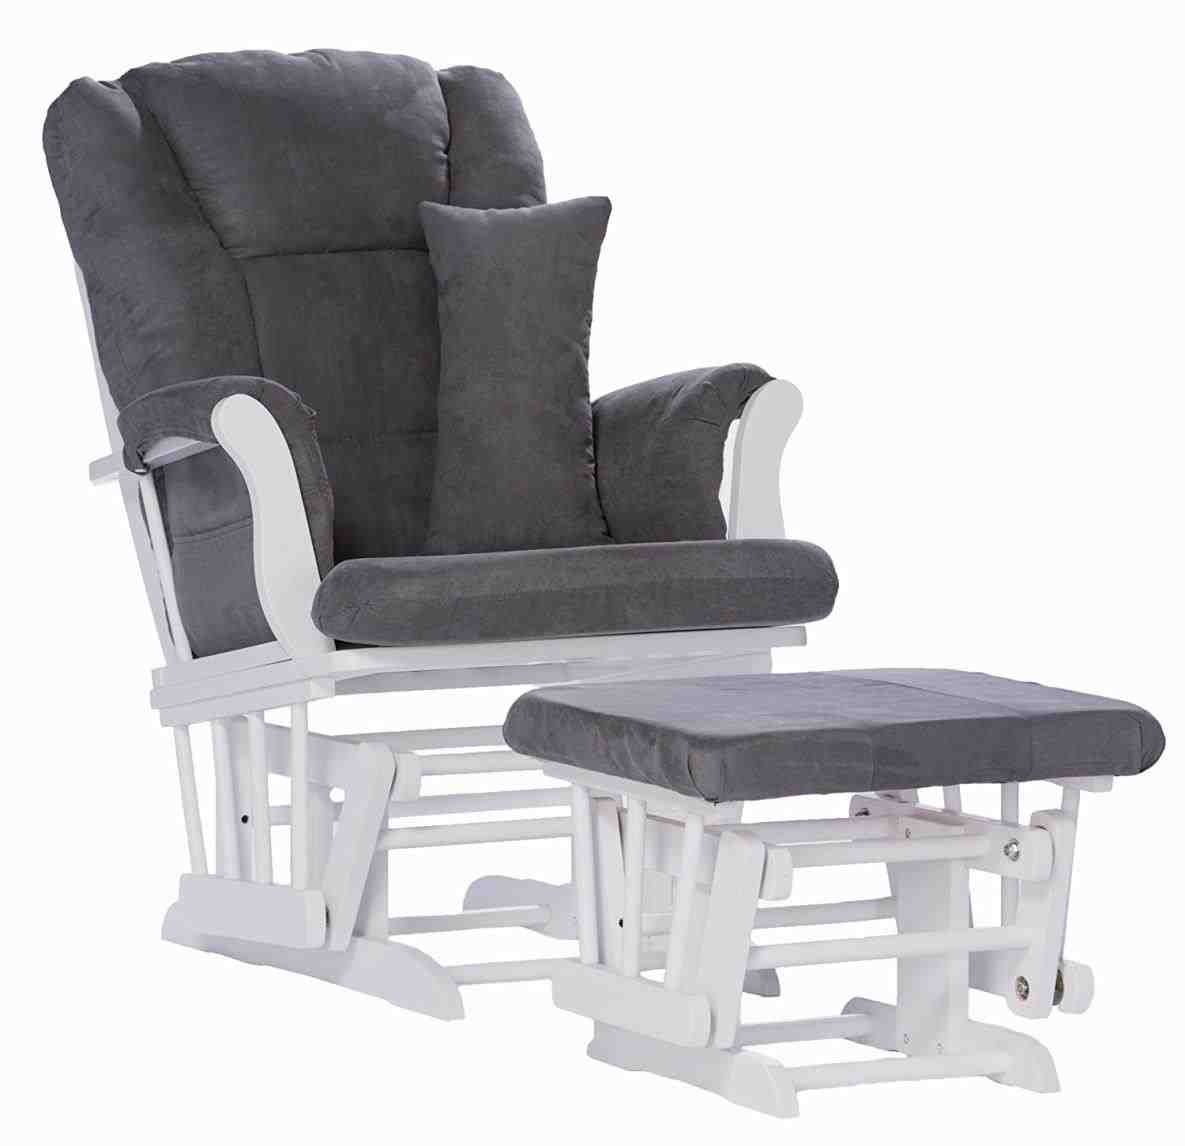 Chair And Half Glider Rocker Chesterfield Club Dimensions A With Ottoman Full Images Of Amazoncom Baby Relax Rylan Swivel Gliding Recliner Size